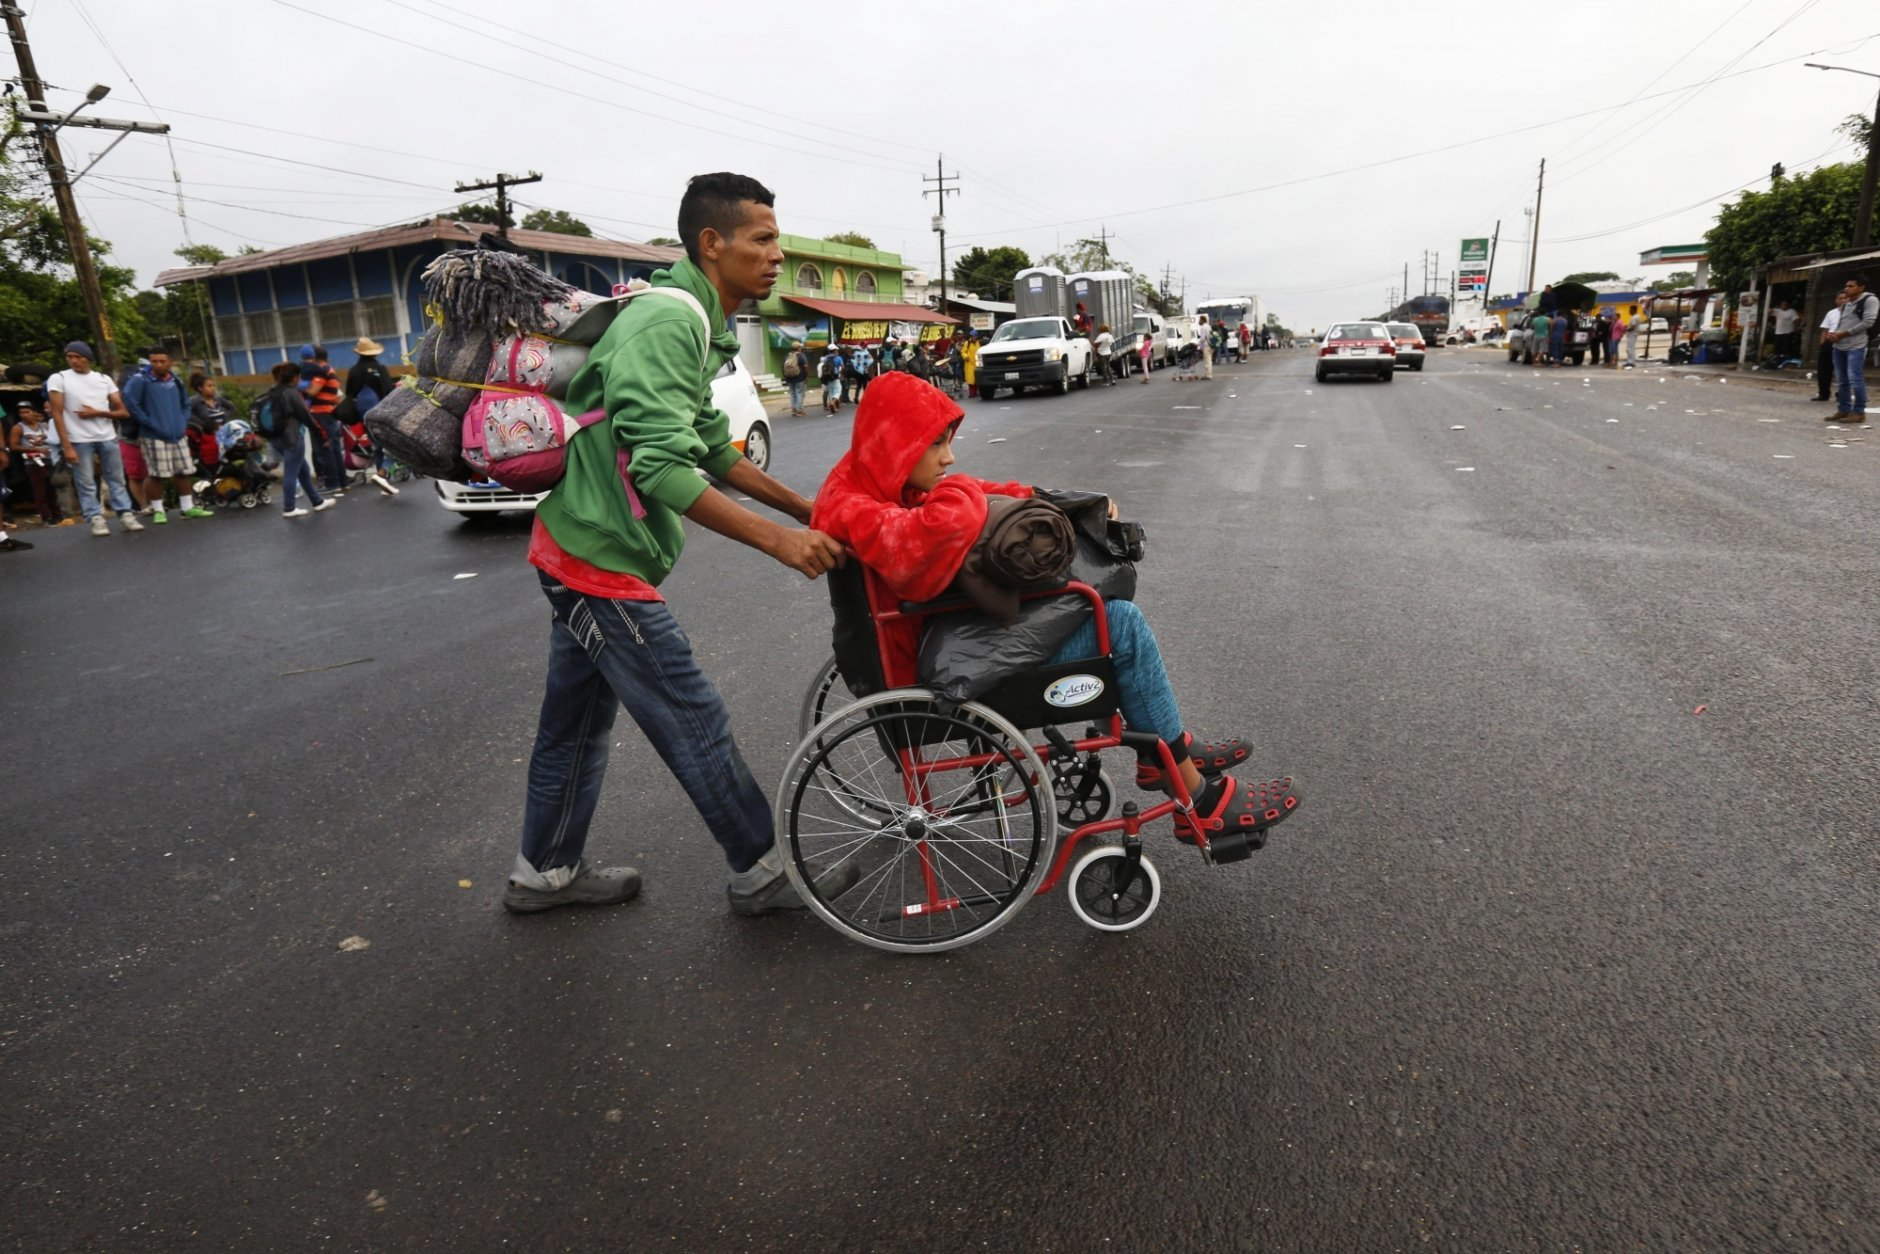 Nicaraguan migrant Javier Velazquez wheels his 14-year-old son across the highway, as part of the Central American migrant caravan hoping to reach the U.S. border, in Acayucan, Veracruz state, Mexico, Saturday, Nov. 3, 2018. Javier Velazquez  said that Axel was shot in the leg during protests in Nicaragua and both are looking for political asylum in the United States. (AP Photo / Marco Ugarte)